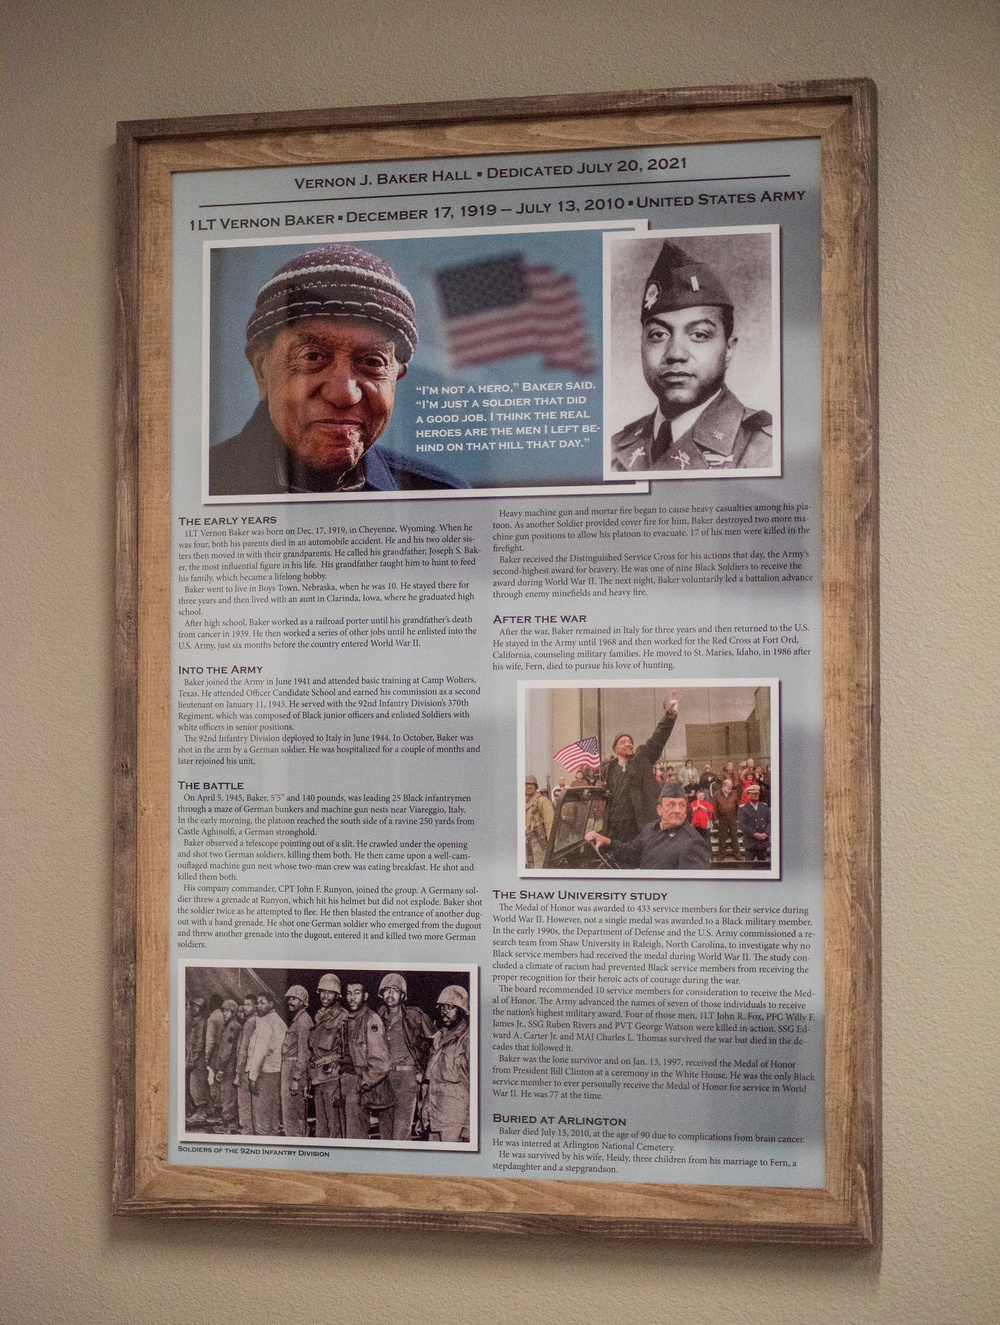 Idaho National Guard memorializes WWII Medal of Honor recipient